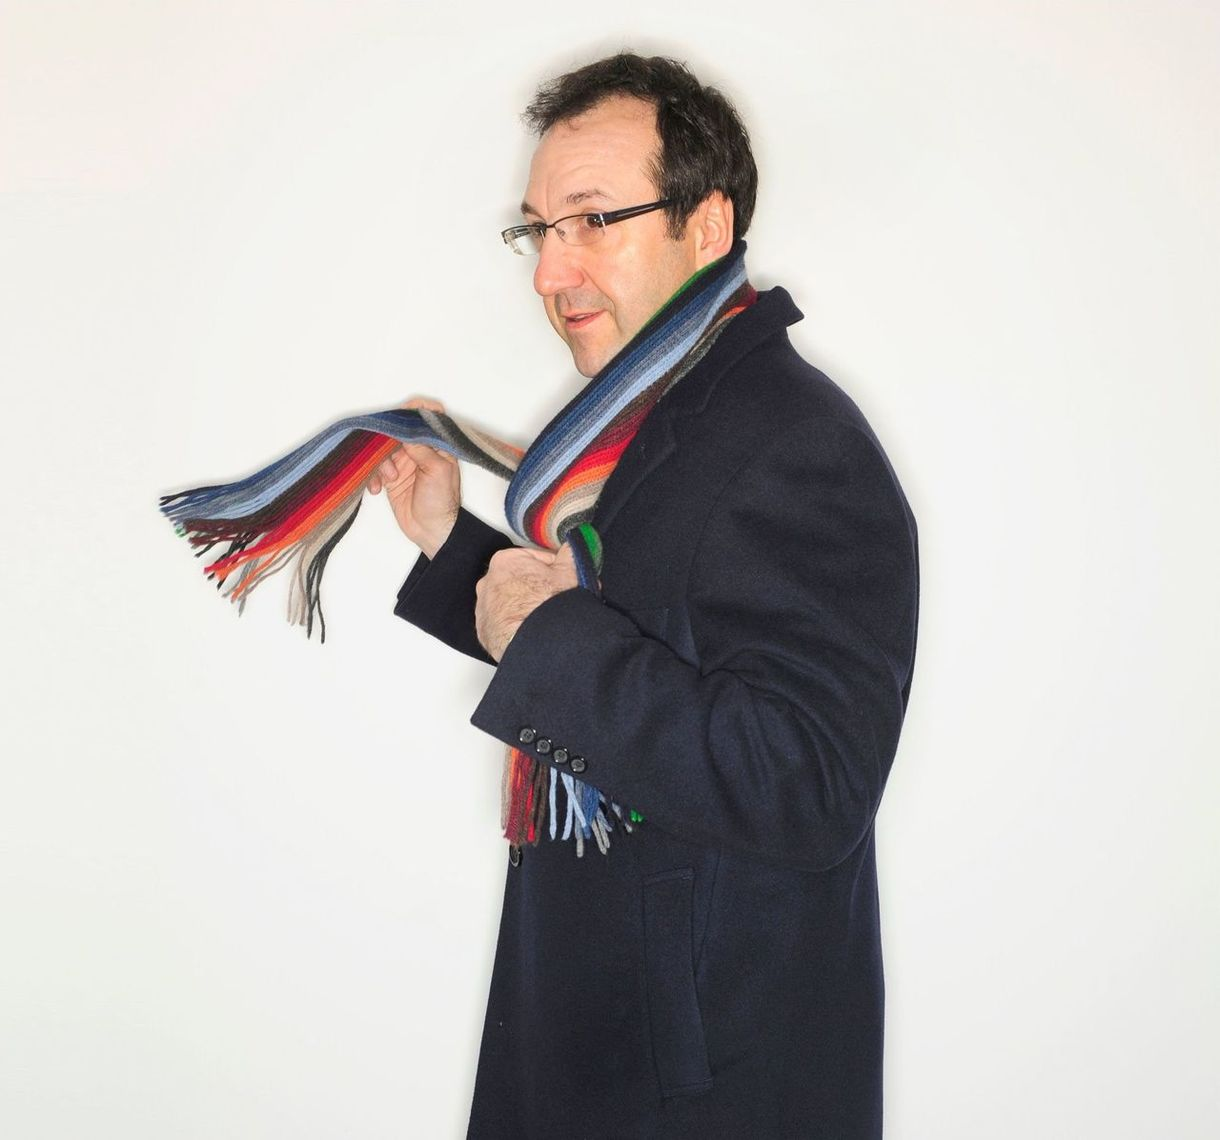 Thierry Leterre with a scarf